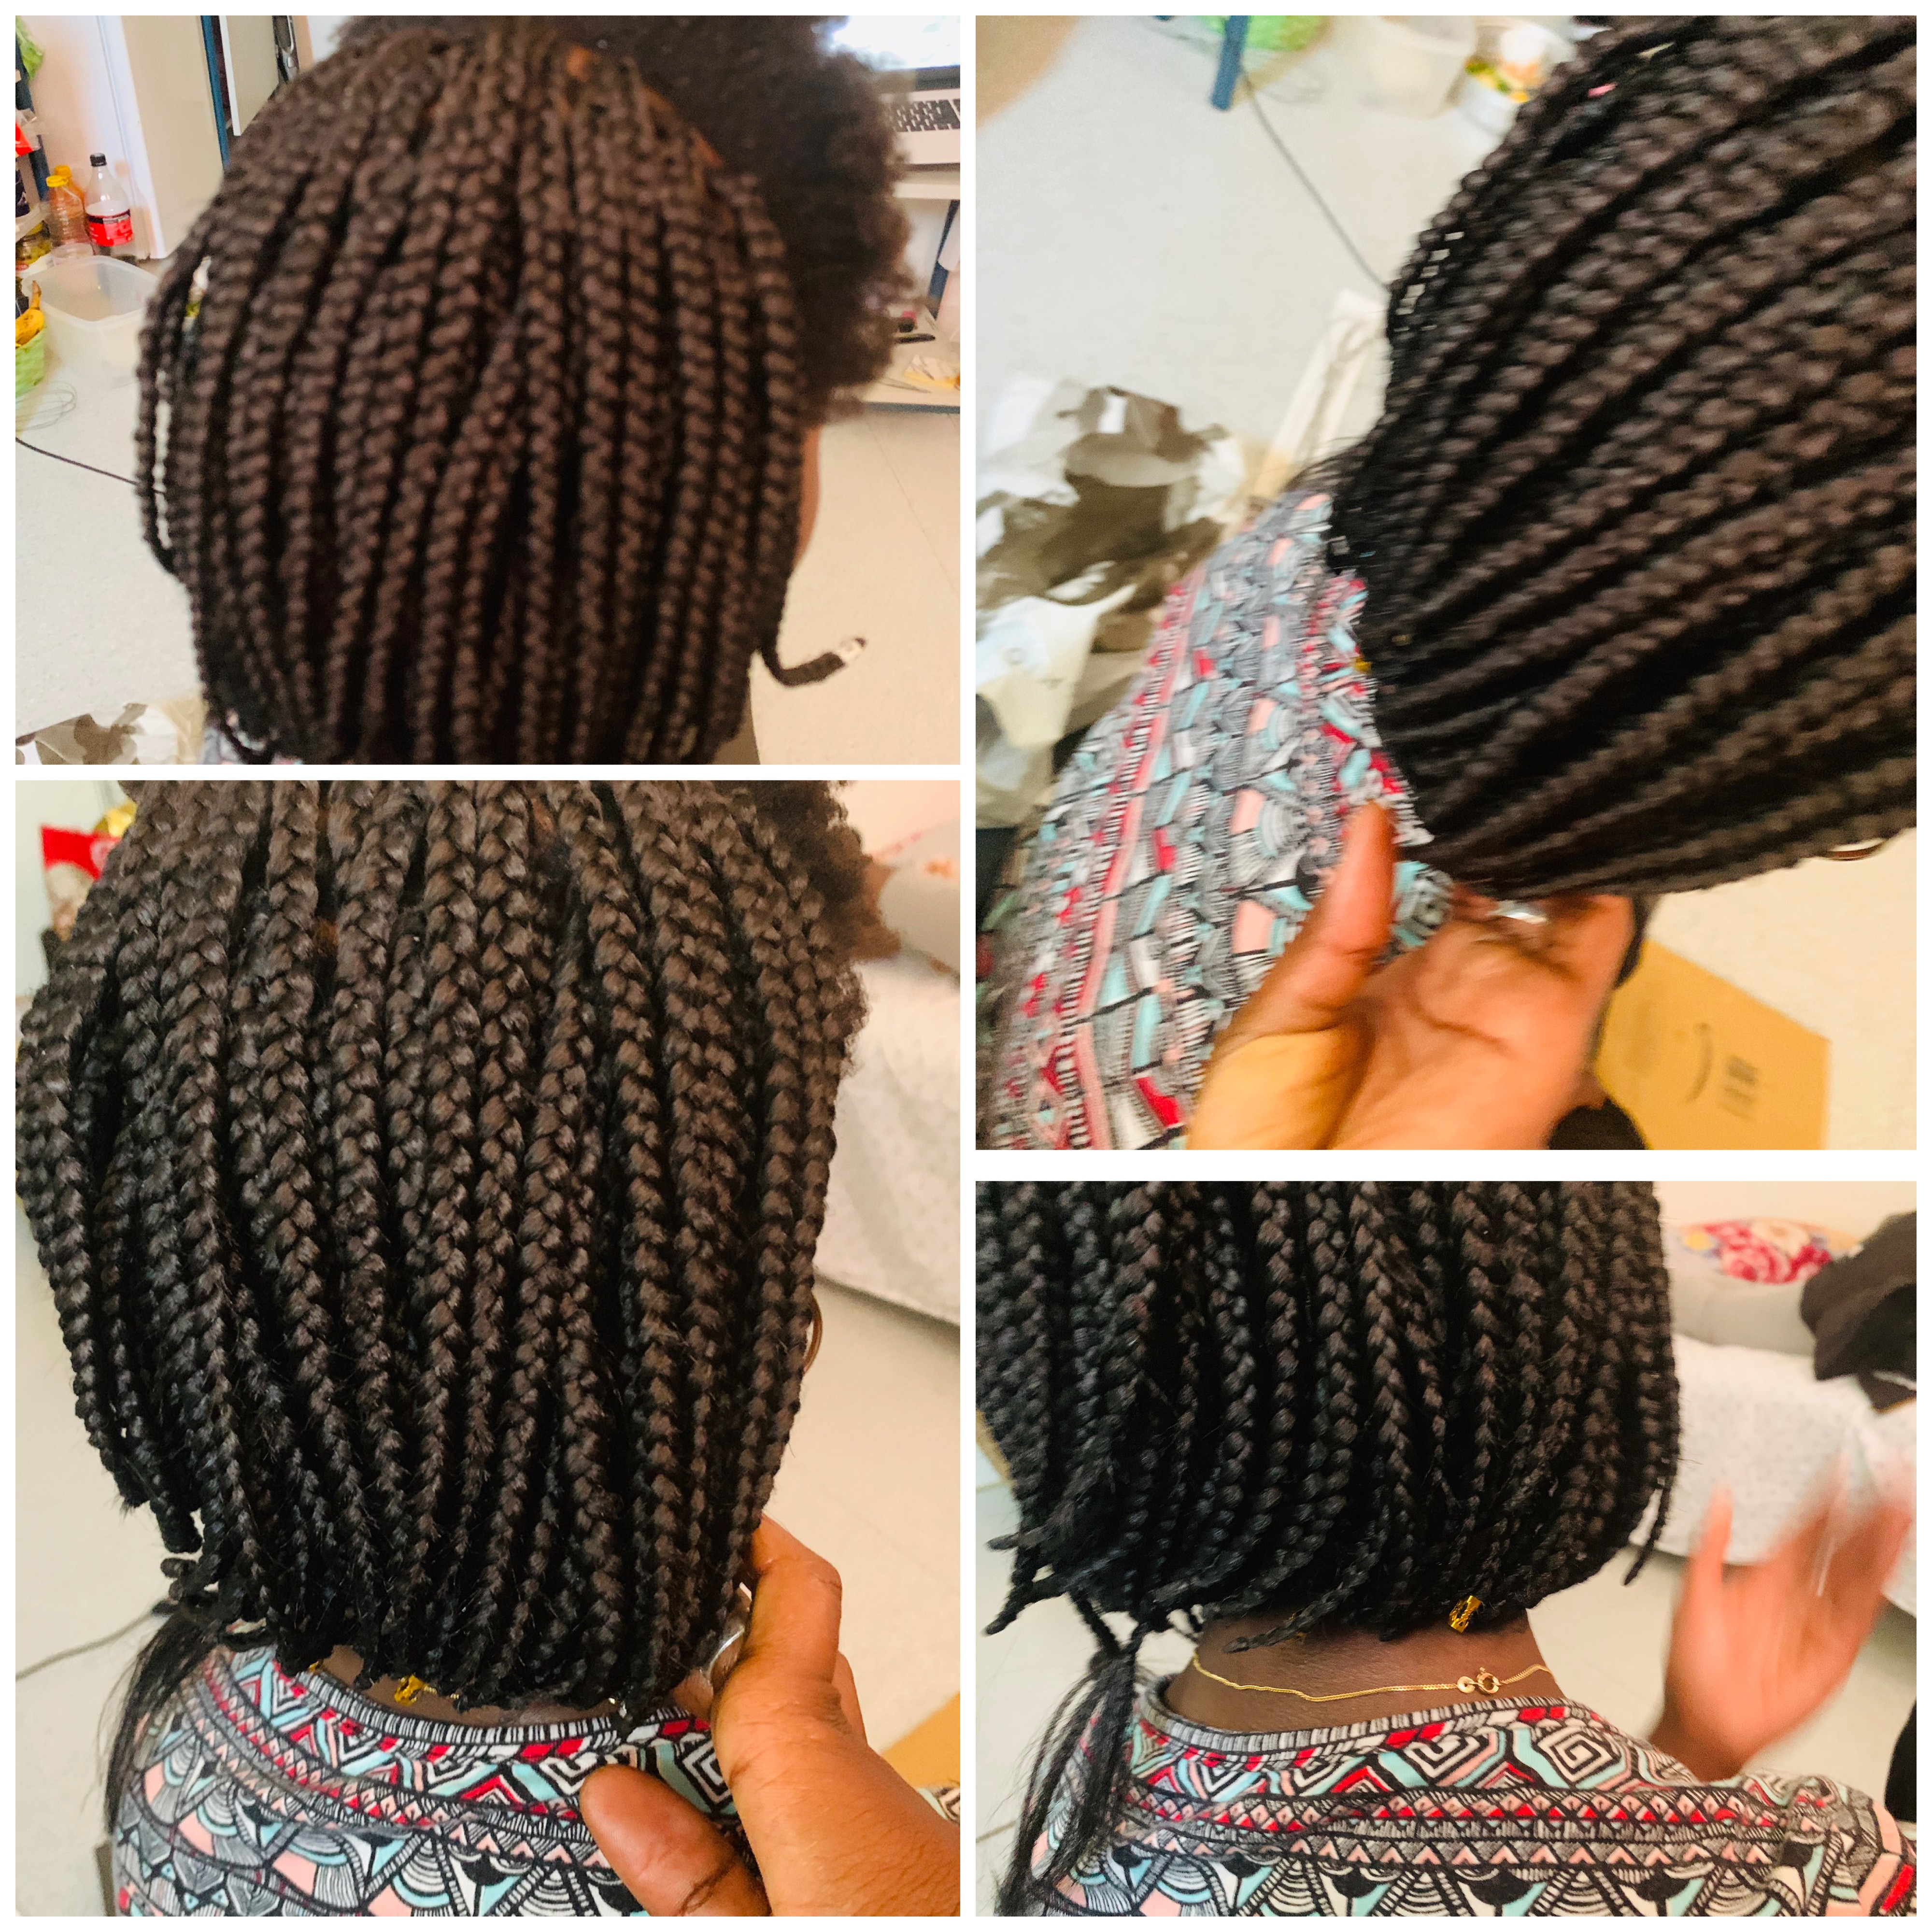 salon de coiffure afro tresse tresses box braids crochet braids vanilles tissages paris 75 77 78 91 92 93 94 95 GCFNVLGC